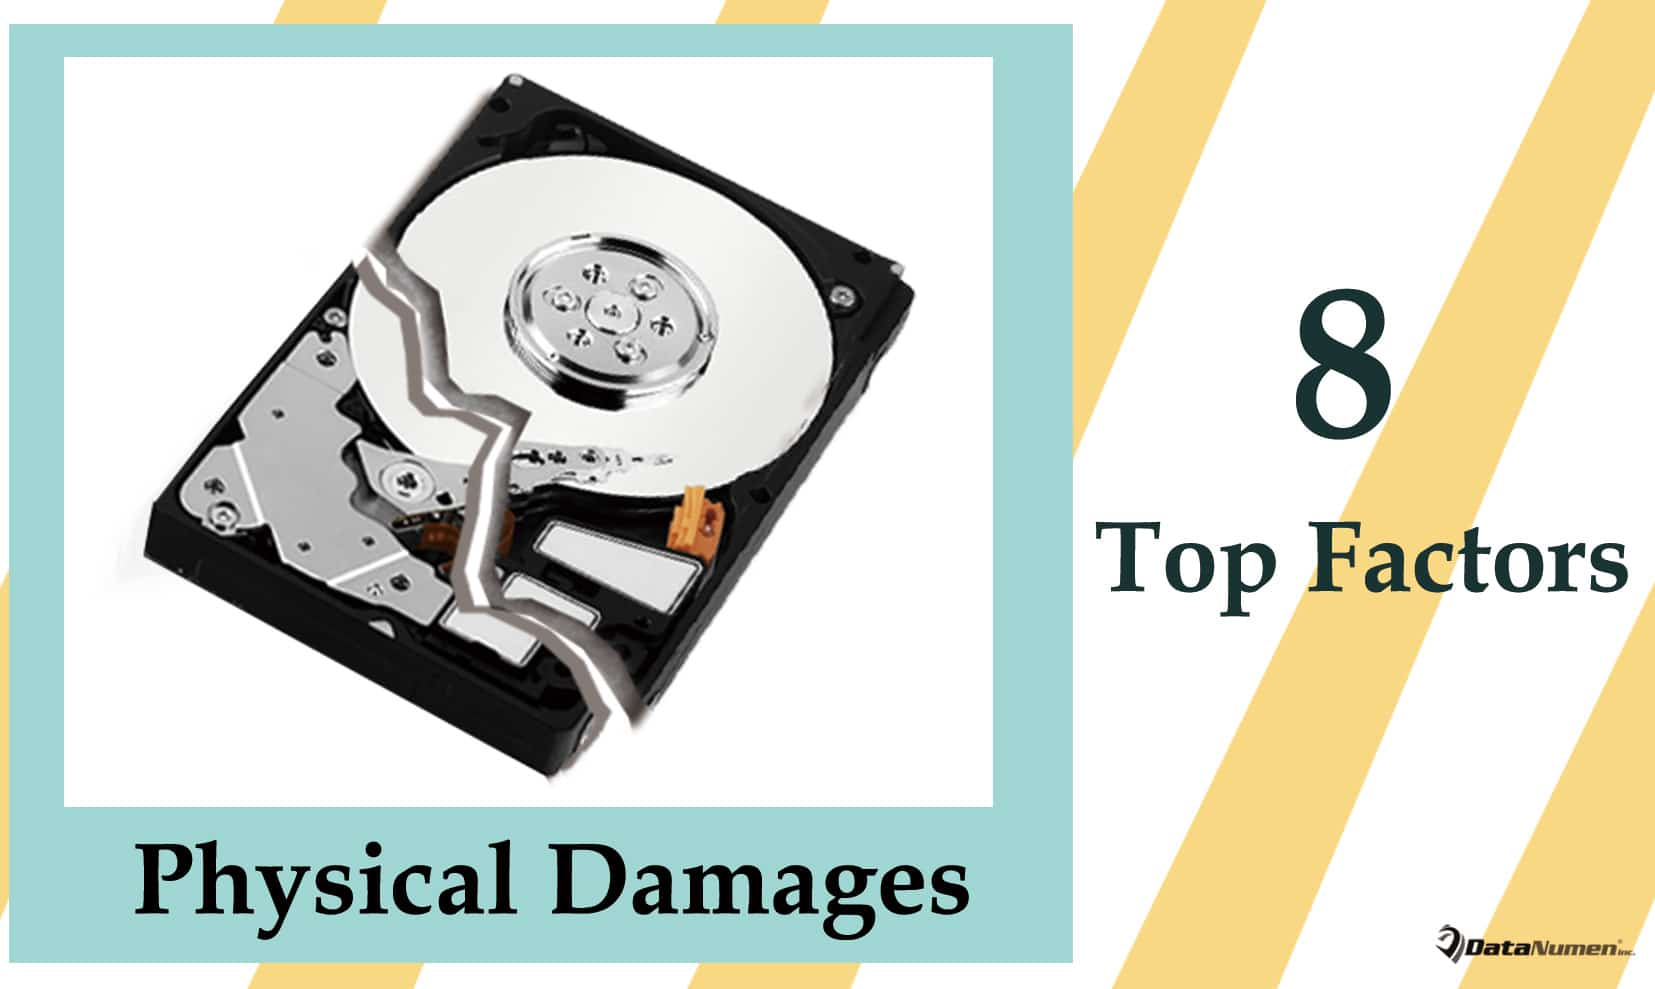 8 Top Factors Causing Physical Damages on Hard Drive